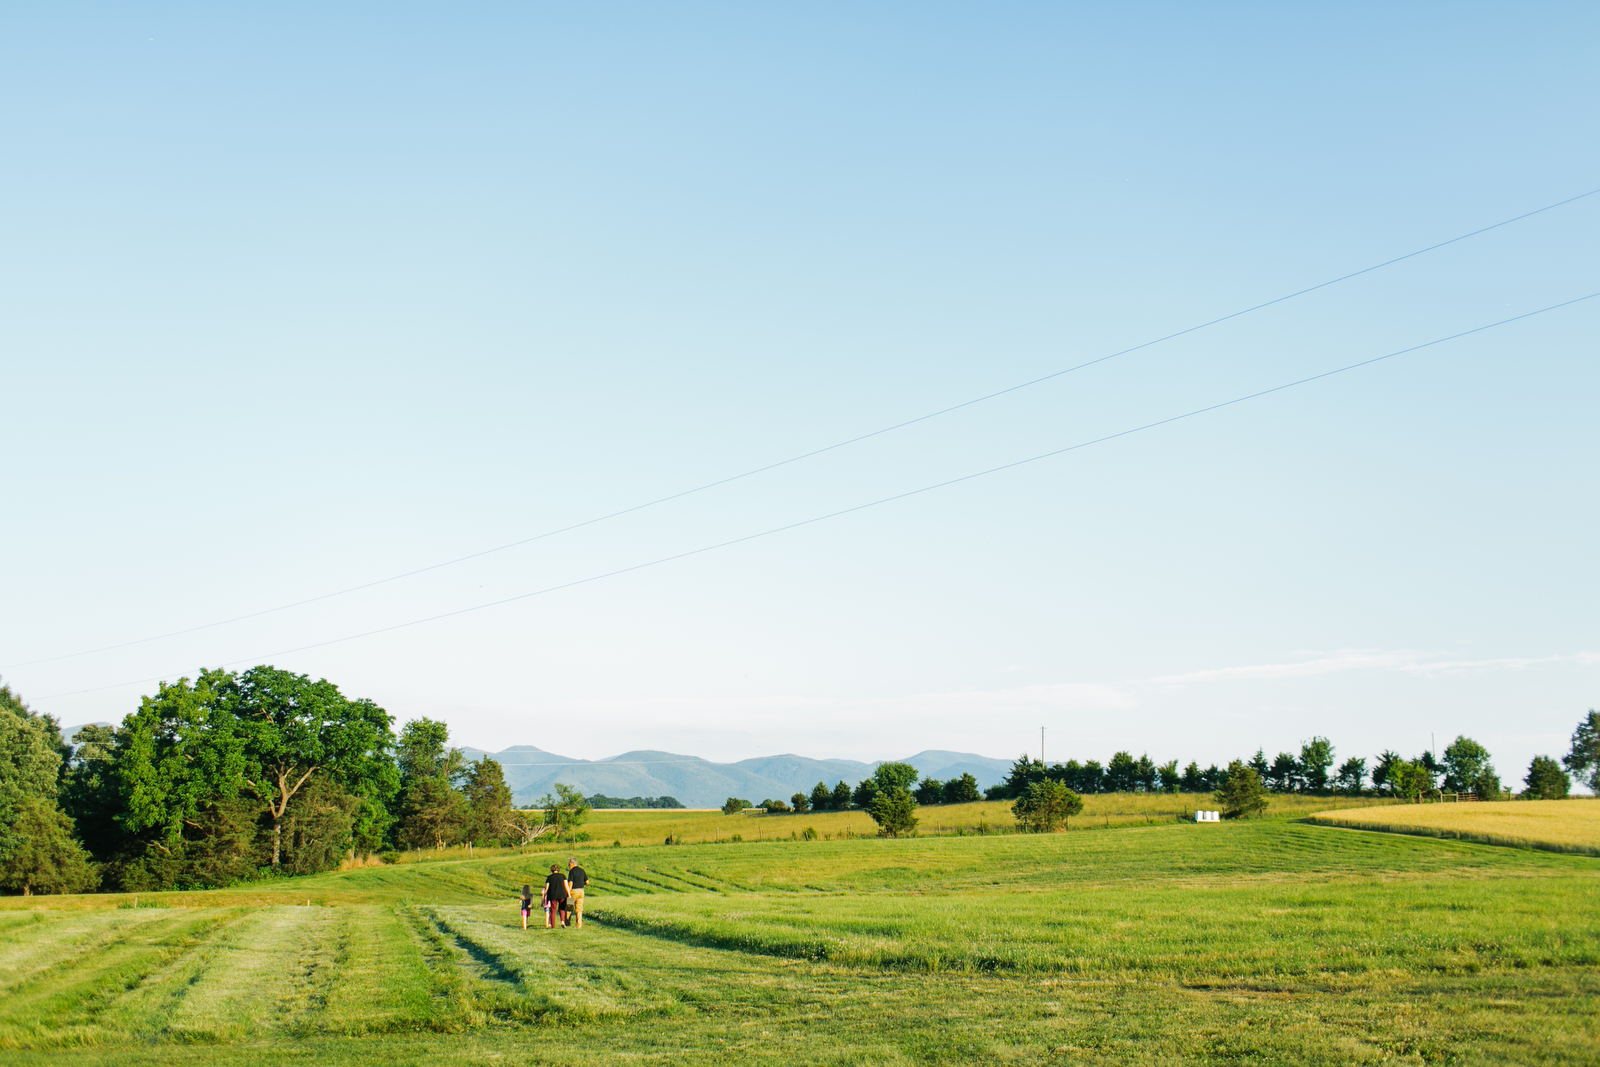 Photograph of the backs of a family as they walk into the distance in the middle of a pasture